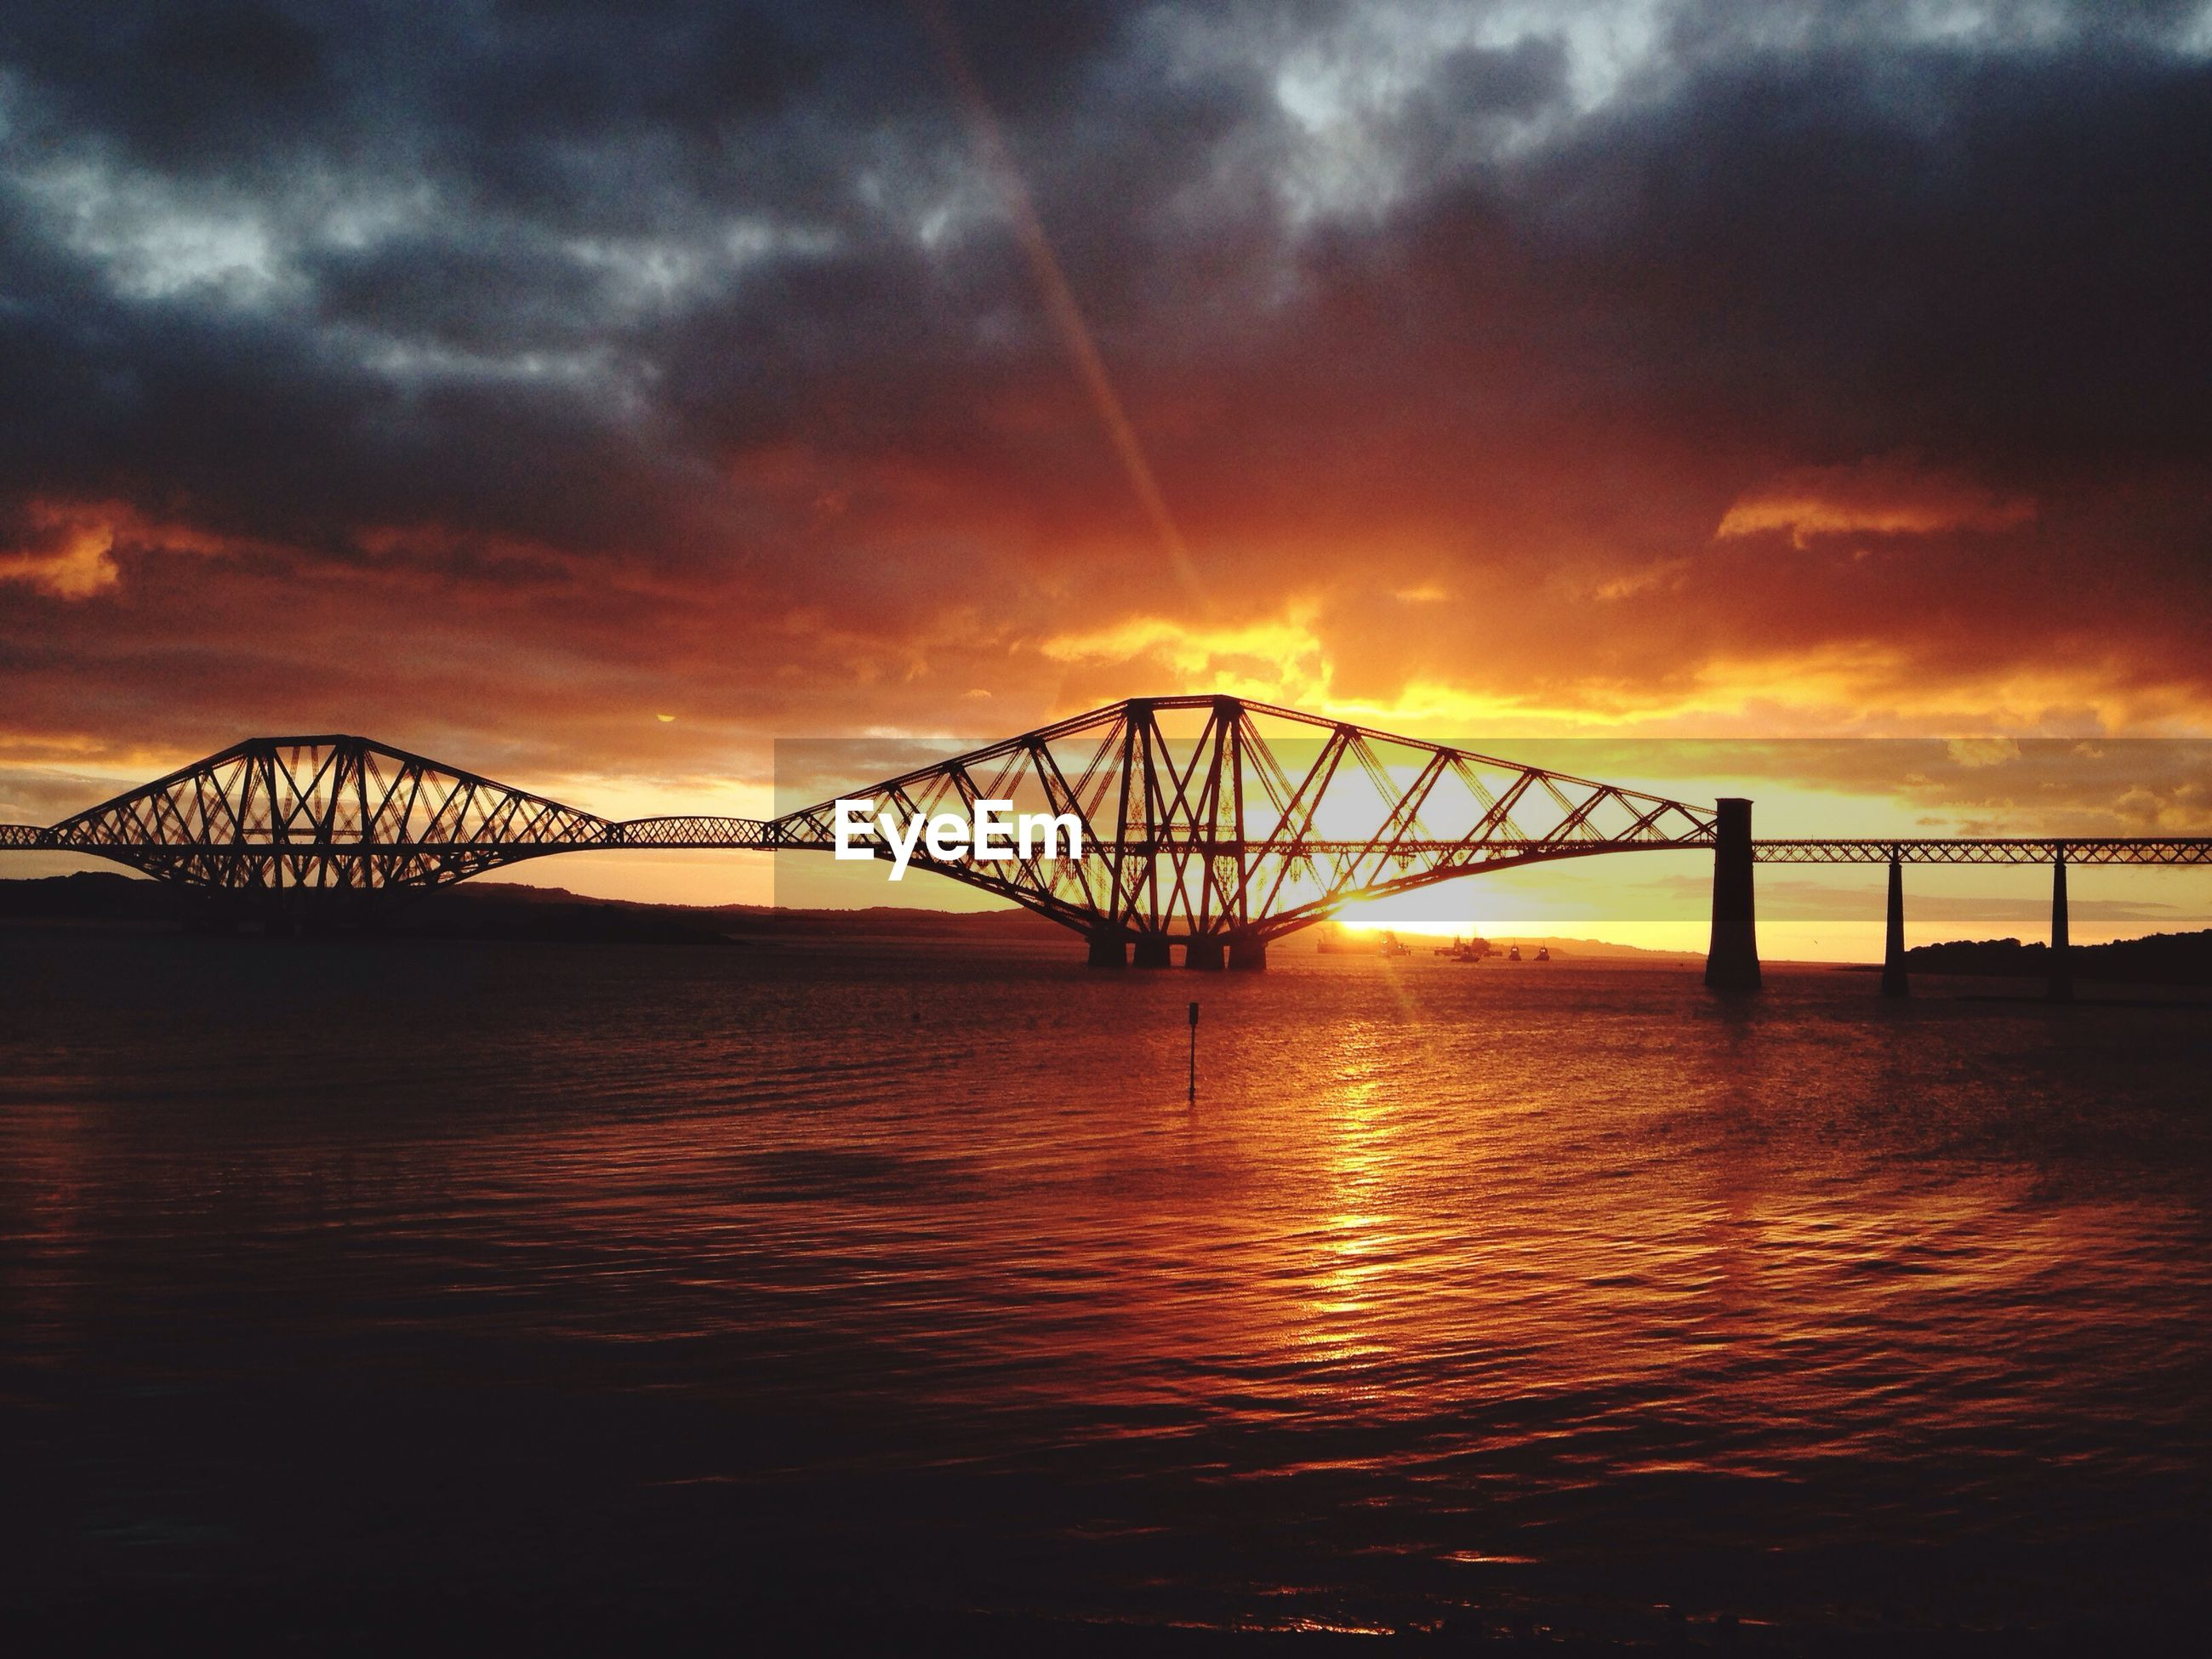 Silhouette forth bridge over river against cloudy sky during sunset